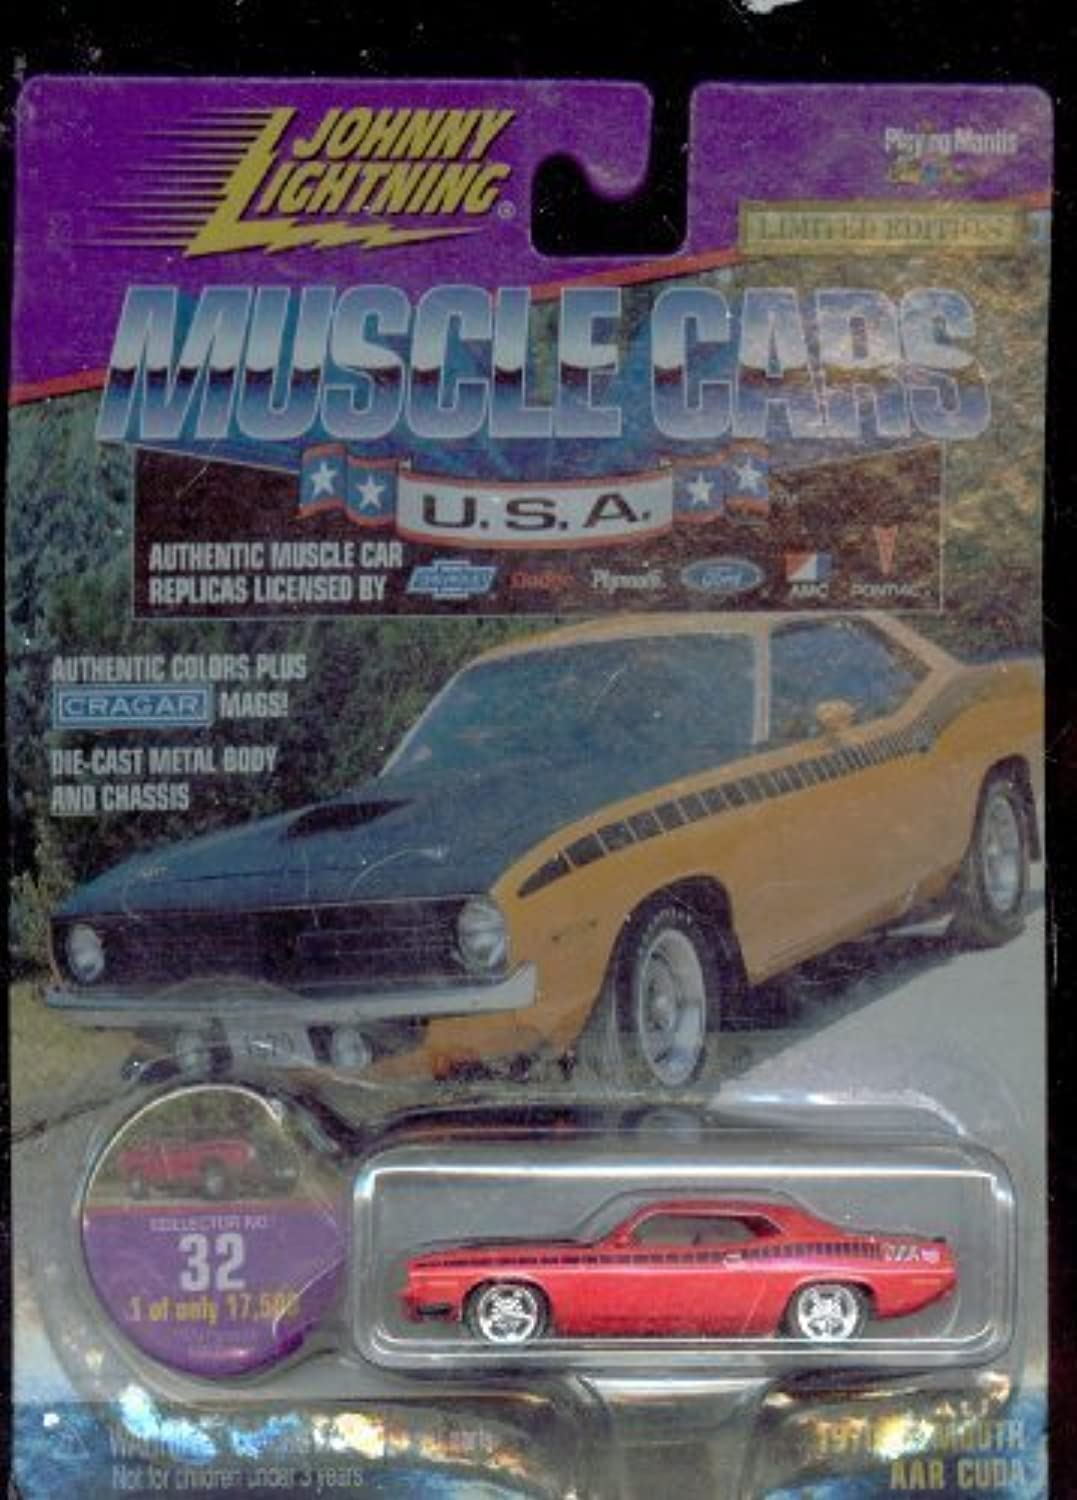 Johnny Lightning 1999-32 Muscle Cars Usa 1970 Plymouth Aar Cuda 1 of Only 17,500 1 64 Scale by Johnny Lightning